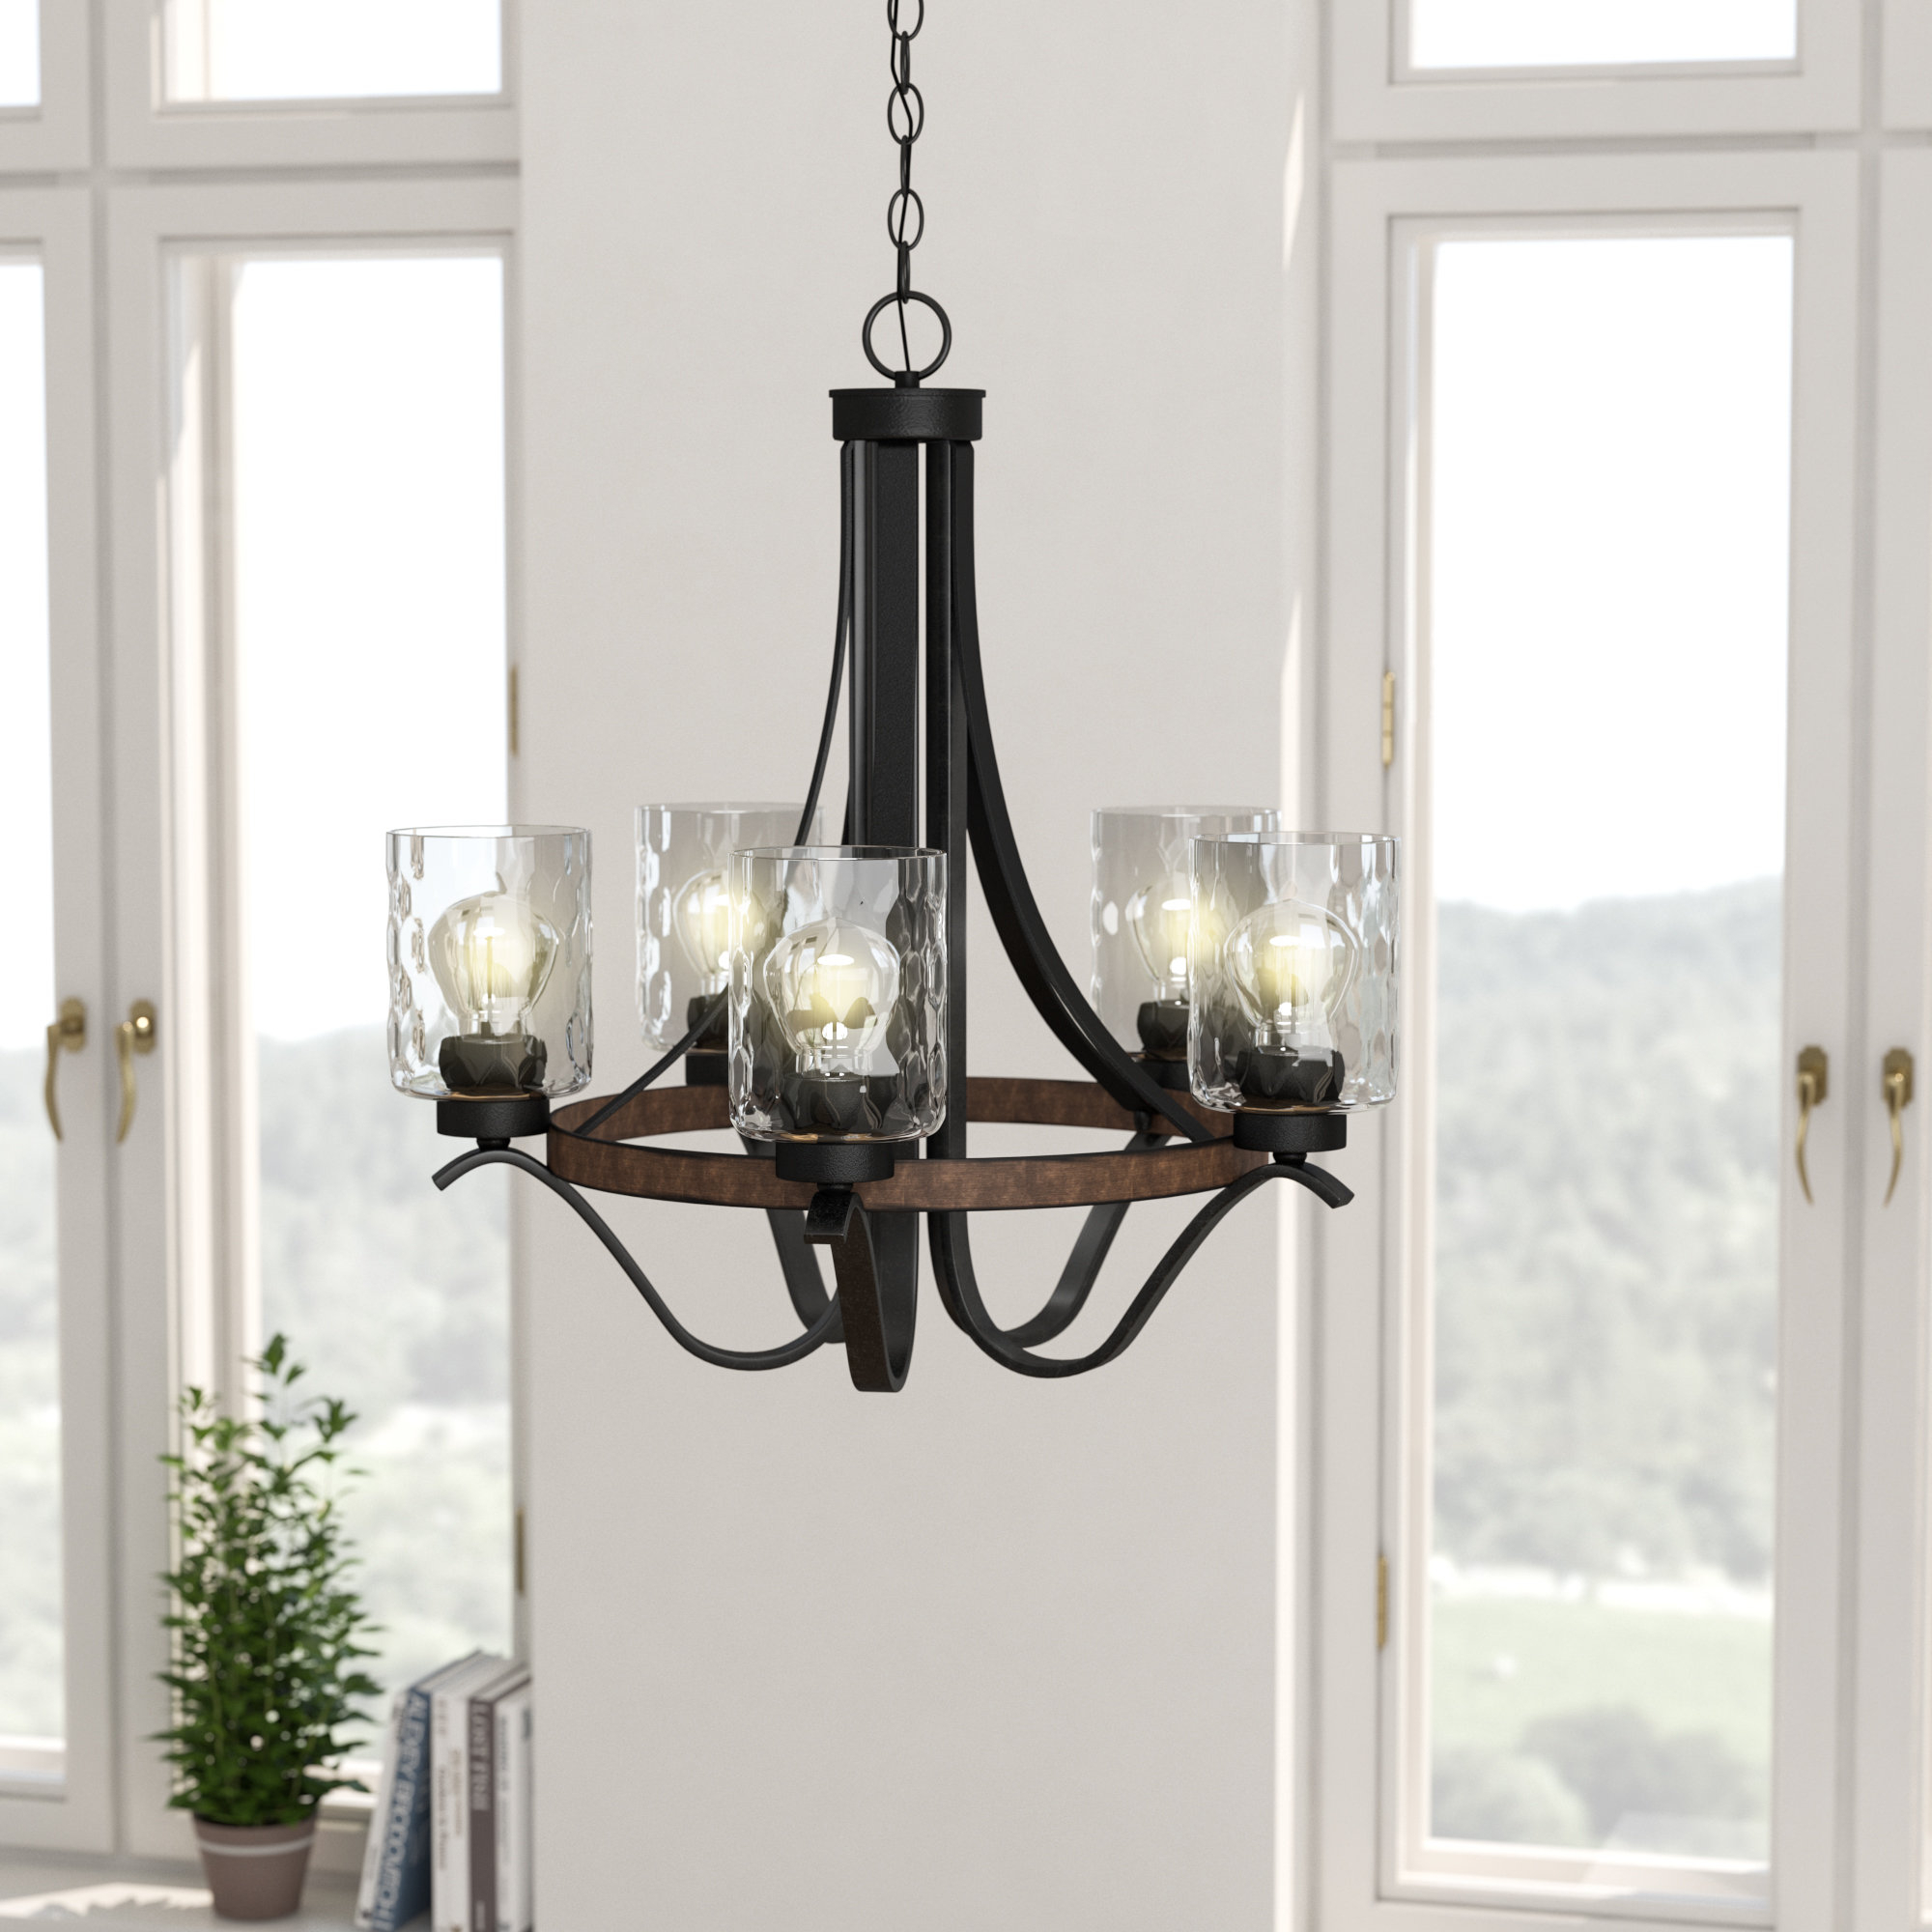 Laurel Foundry Modern Farmhouse Sabo Indoor 5-Light Shaded Chandelier in Suki 5-Light Shaded Chandeliers (Image 14 of 30)